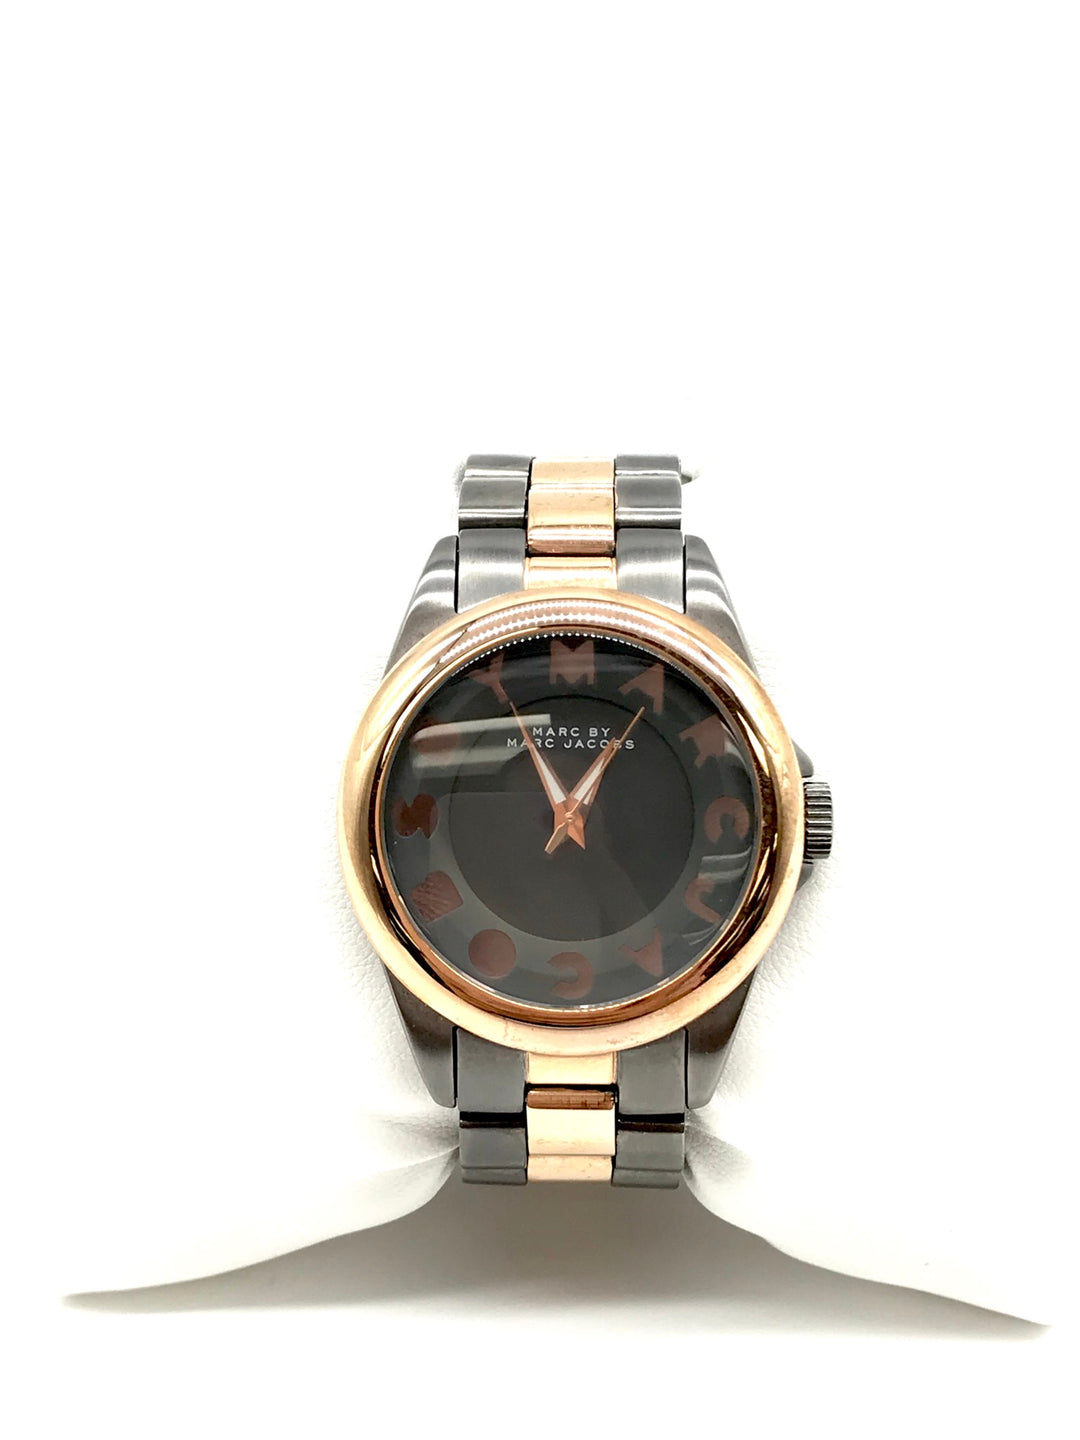 Primary Photo - BRAND: MARC BY MARC JACOBS <BR>STYLE: WATCH <BR>COLOR: GREY <BR>SIZE: XS <BR>SKU: 262-26211-139465<BR>FITS XS WRIST AROUND 5.5 IN DIAMETER • BATTERY NEEDED • AS IS<BR>DESIGNER BRAND - FINAL SALE